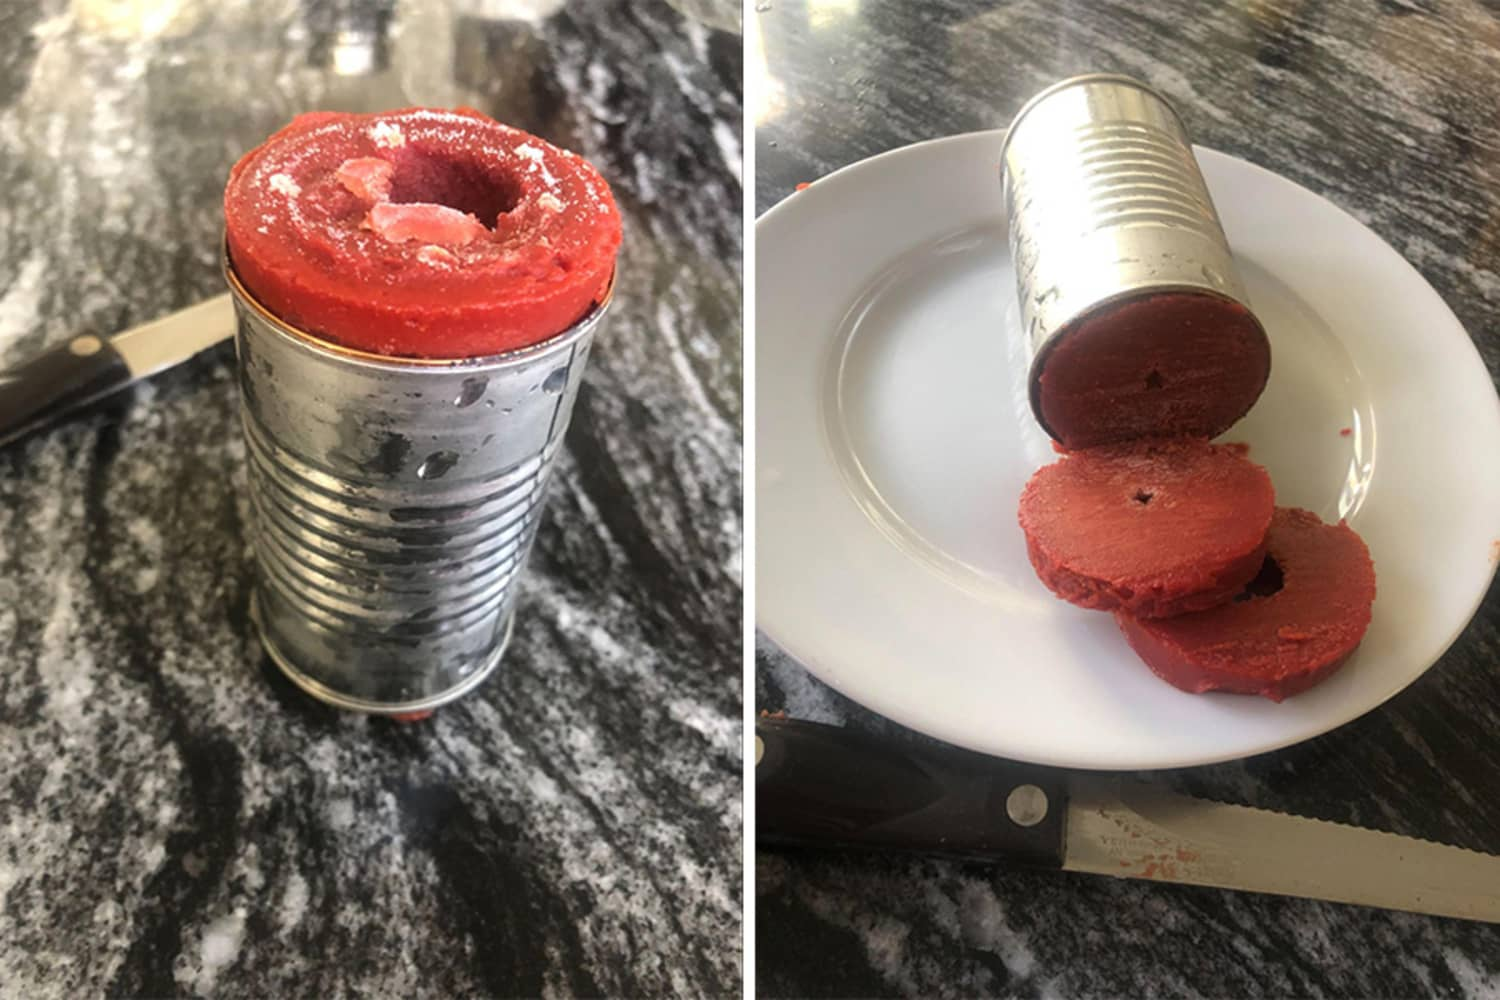 Martha Stewart's Tomato Paste Hack Is Totally Brilliant (with a Couple of Adjustments)